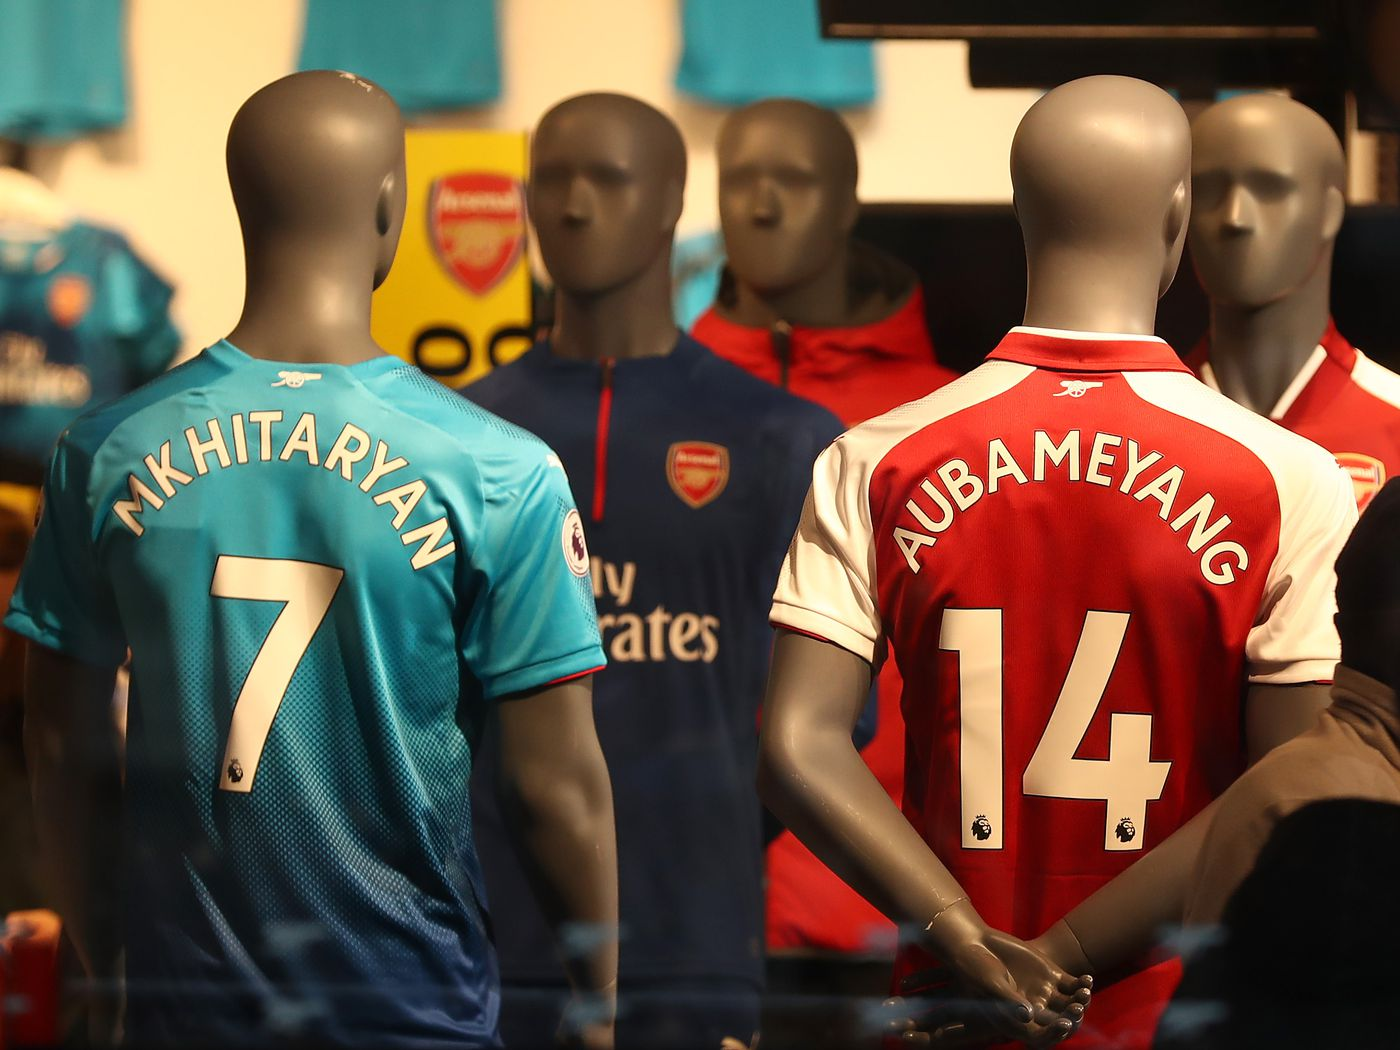 newest 1bcbf 6a901 Fans react positively to Arsenal's 2019-2020 Adidas third ...